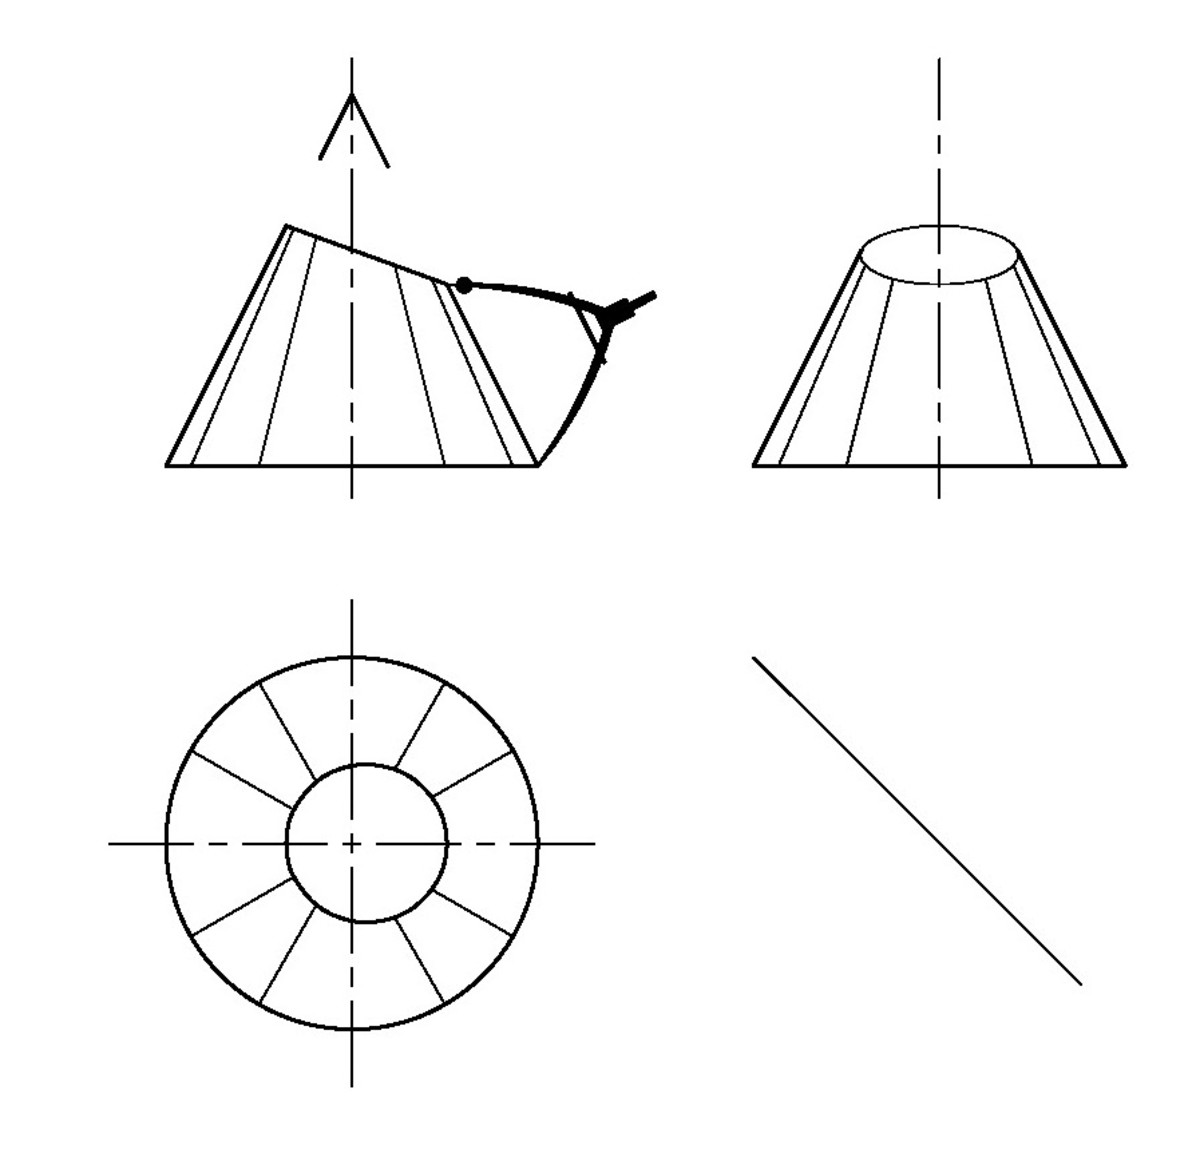 how to develop a truncated cone